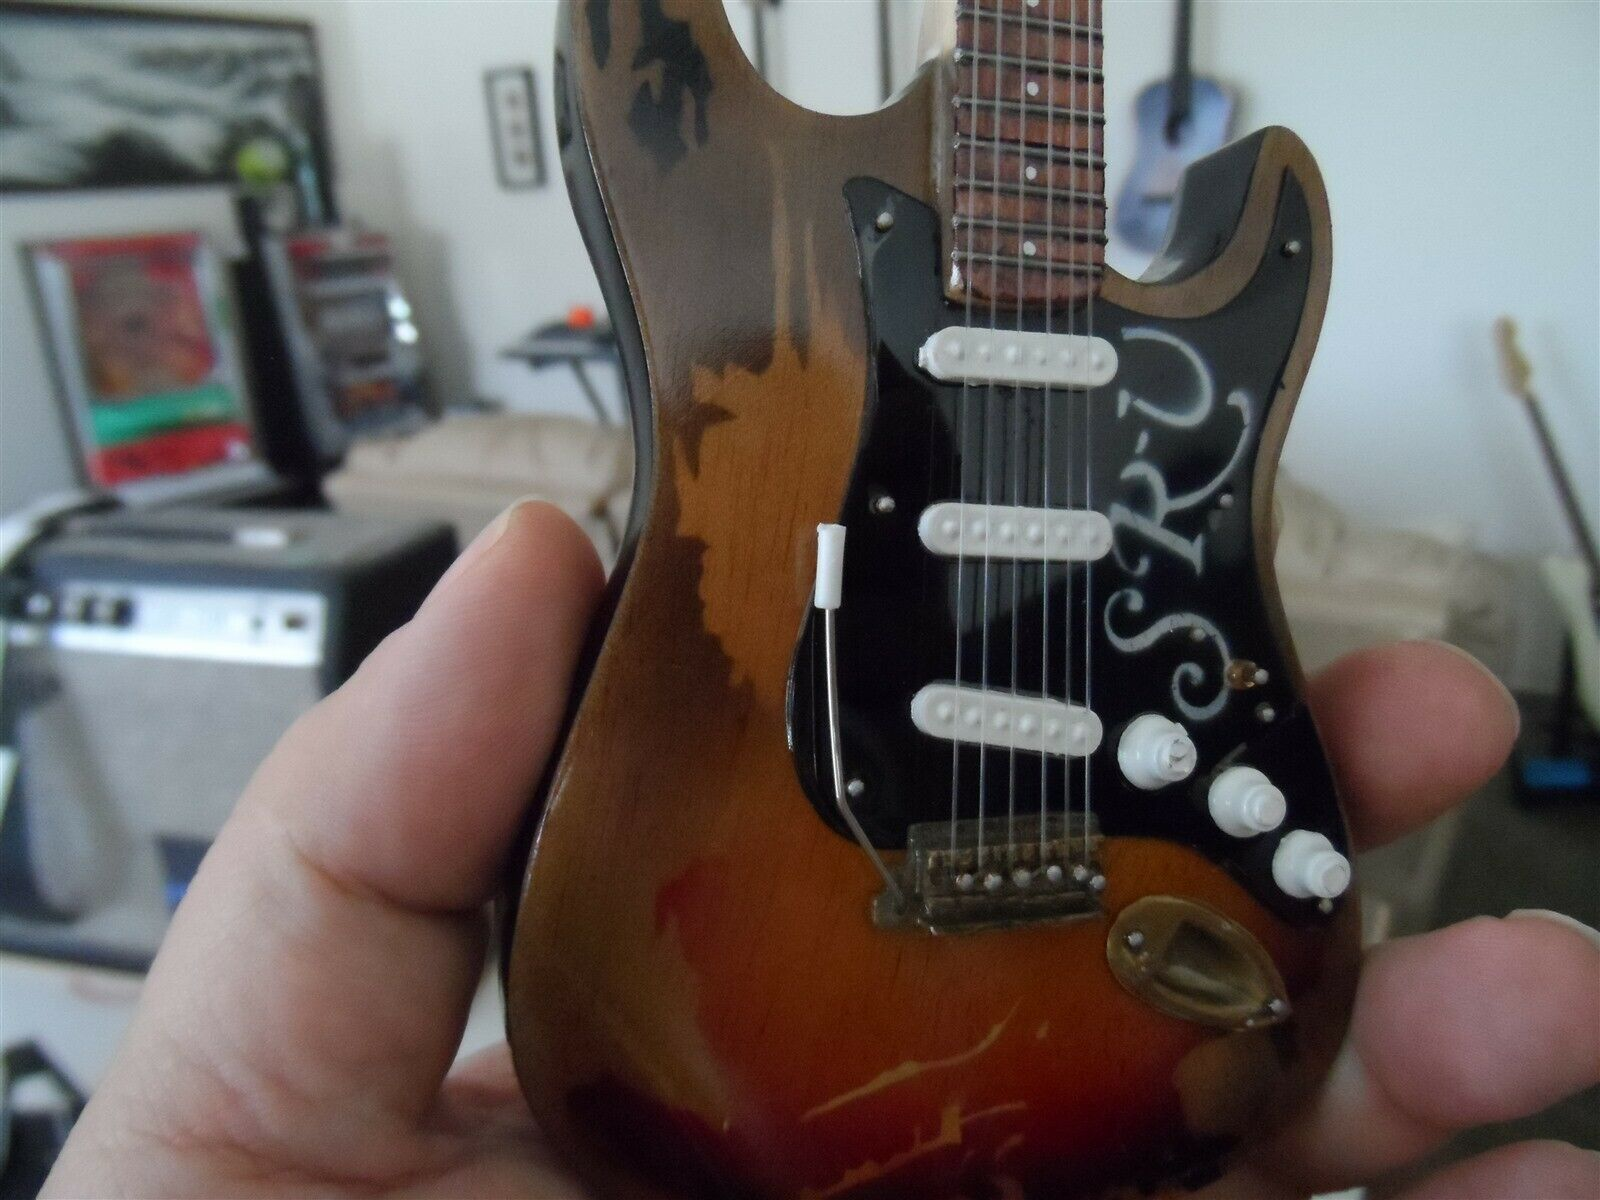 Stevie Ray Vaughan - Invecchiato No. 1 Fender Strat 1:4 Scala Replica Chitarra ~ image 2